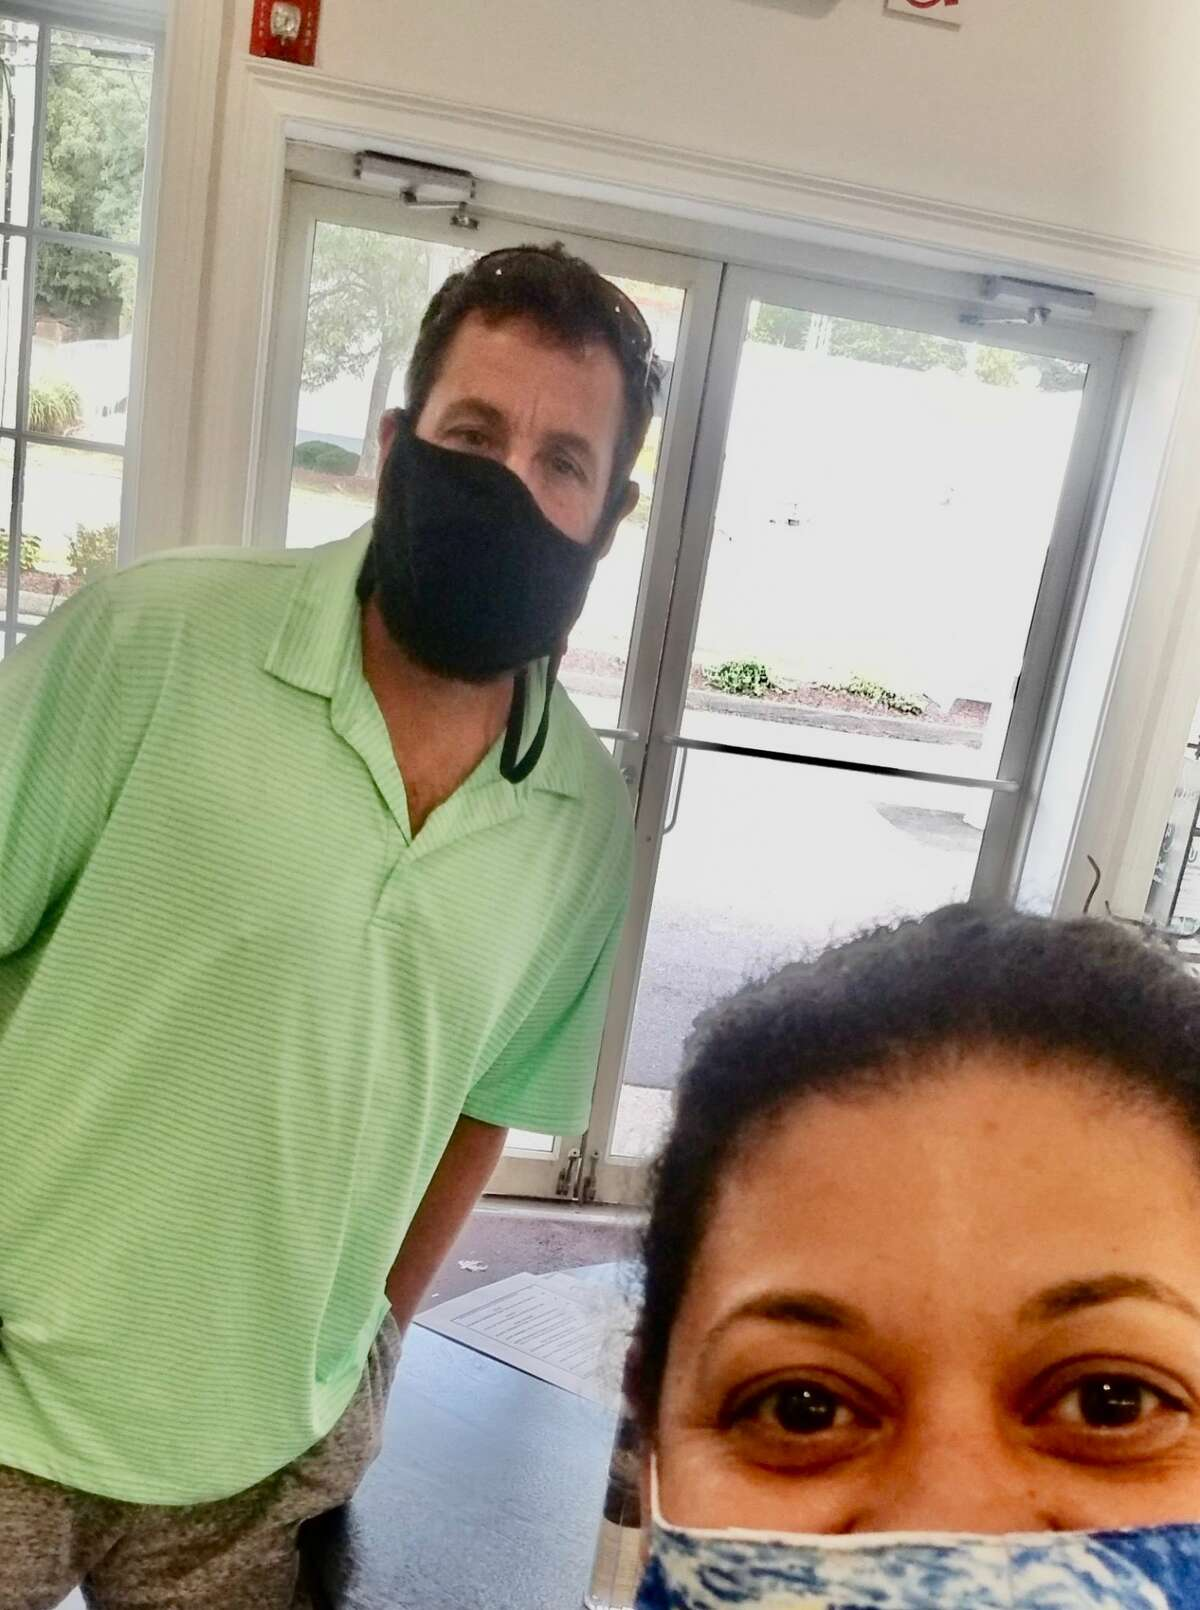 Adam Sandler and Marisol Ballejo at Fred 06825 in Fairfield to pick up food on Sept. 28, 2020. Sandler was passing through with his parents on his way to Philadelphia and arrived at the deli around 2 p.m. to pick up food with which he planned to break his Yom Kippur fast, according to owner Fred Kaskowitz. He entered alone wearing a black mask and ordered turkey meatballs, sweet and sour peppers and panko-crusted chicken; Kaskowitz said they threw in a free brownie for